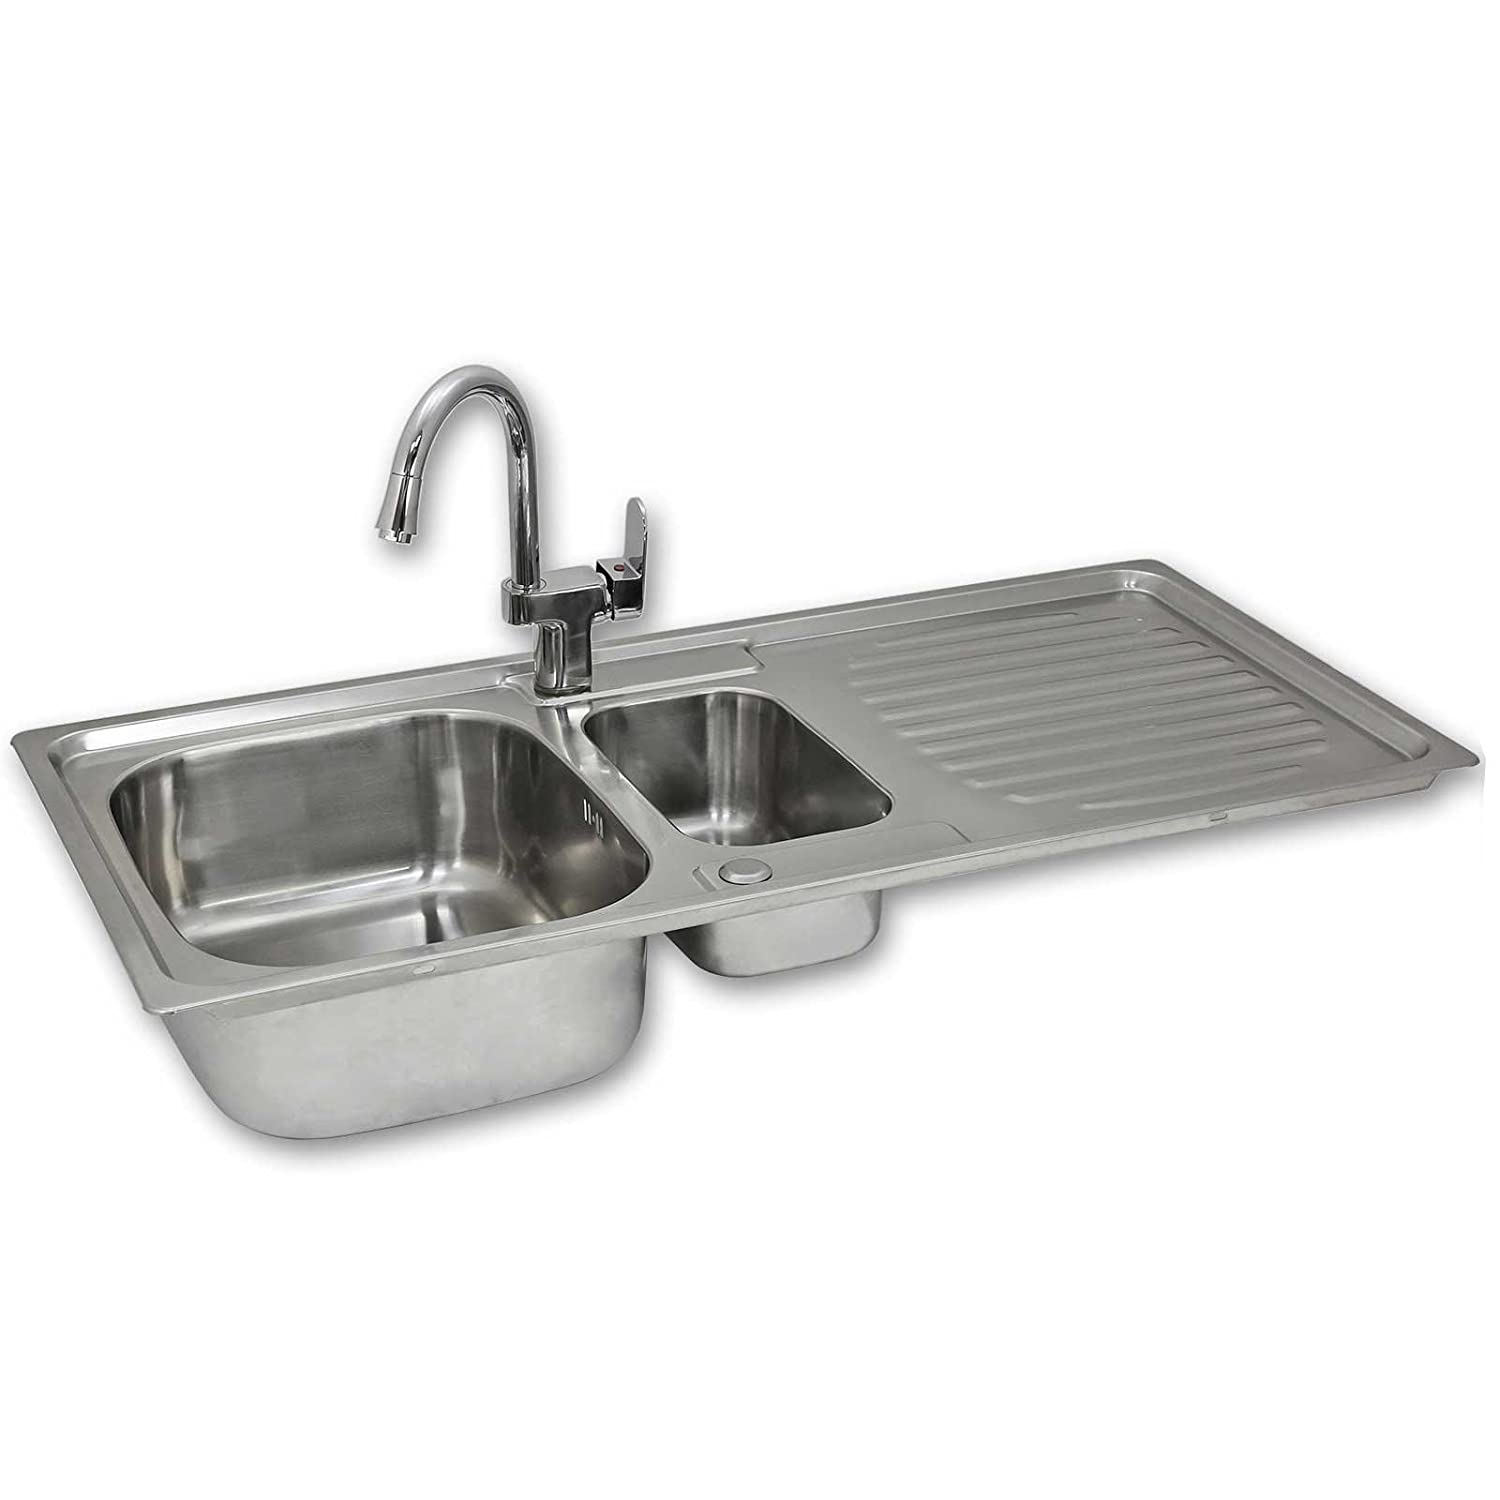 Amazon.com: KuKoo Stainless Steel Kitchen Sink Basin ...